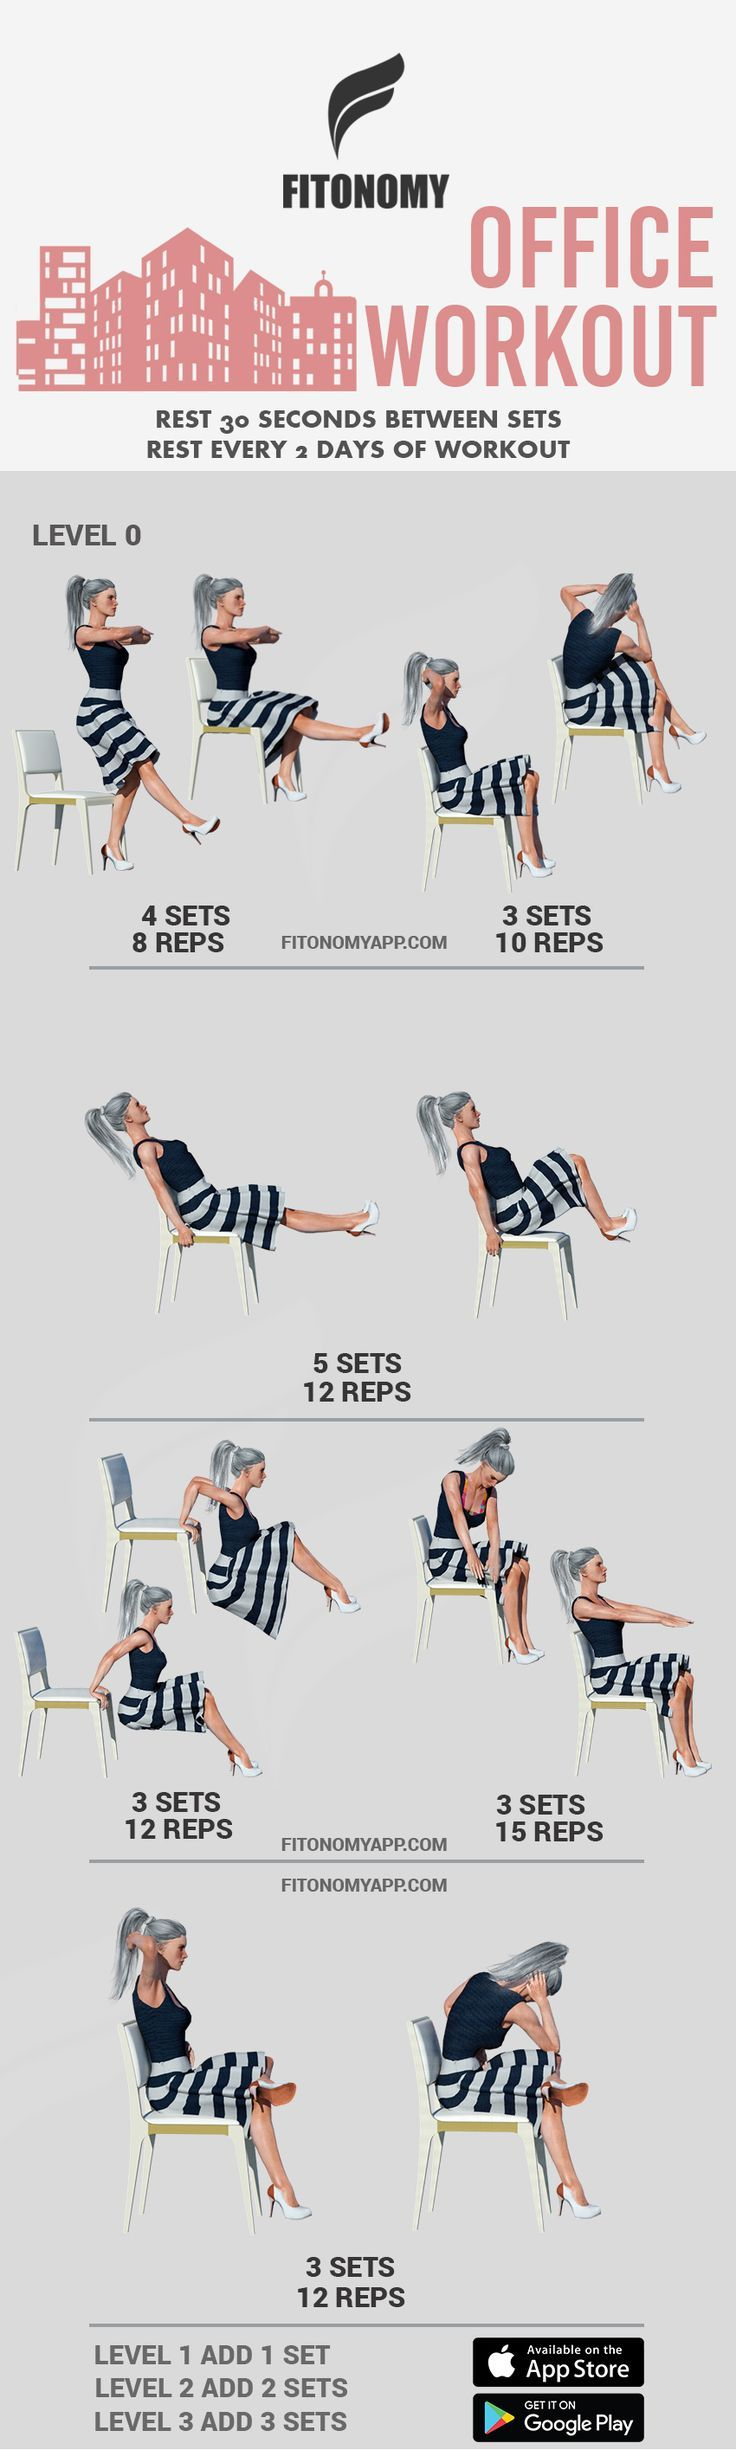 Office workout download fitonomy app for more routines